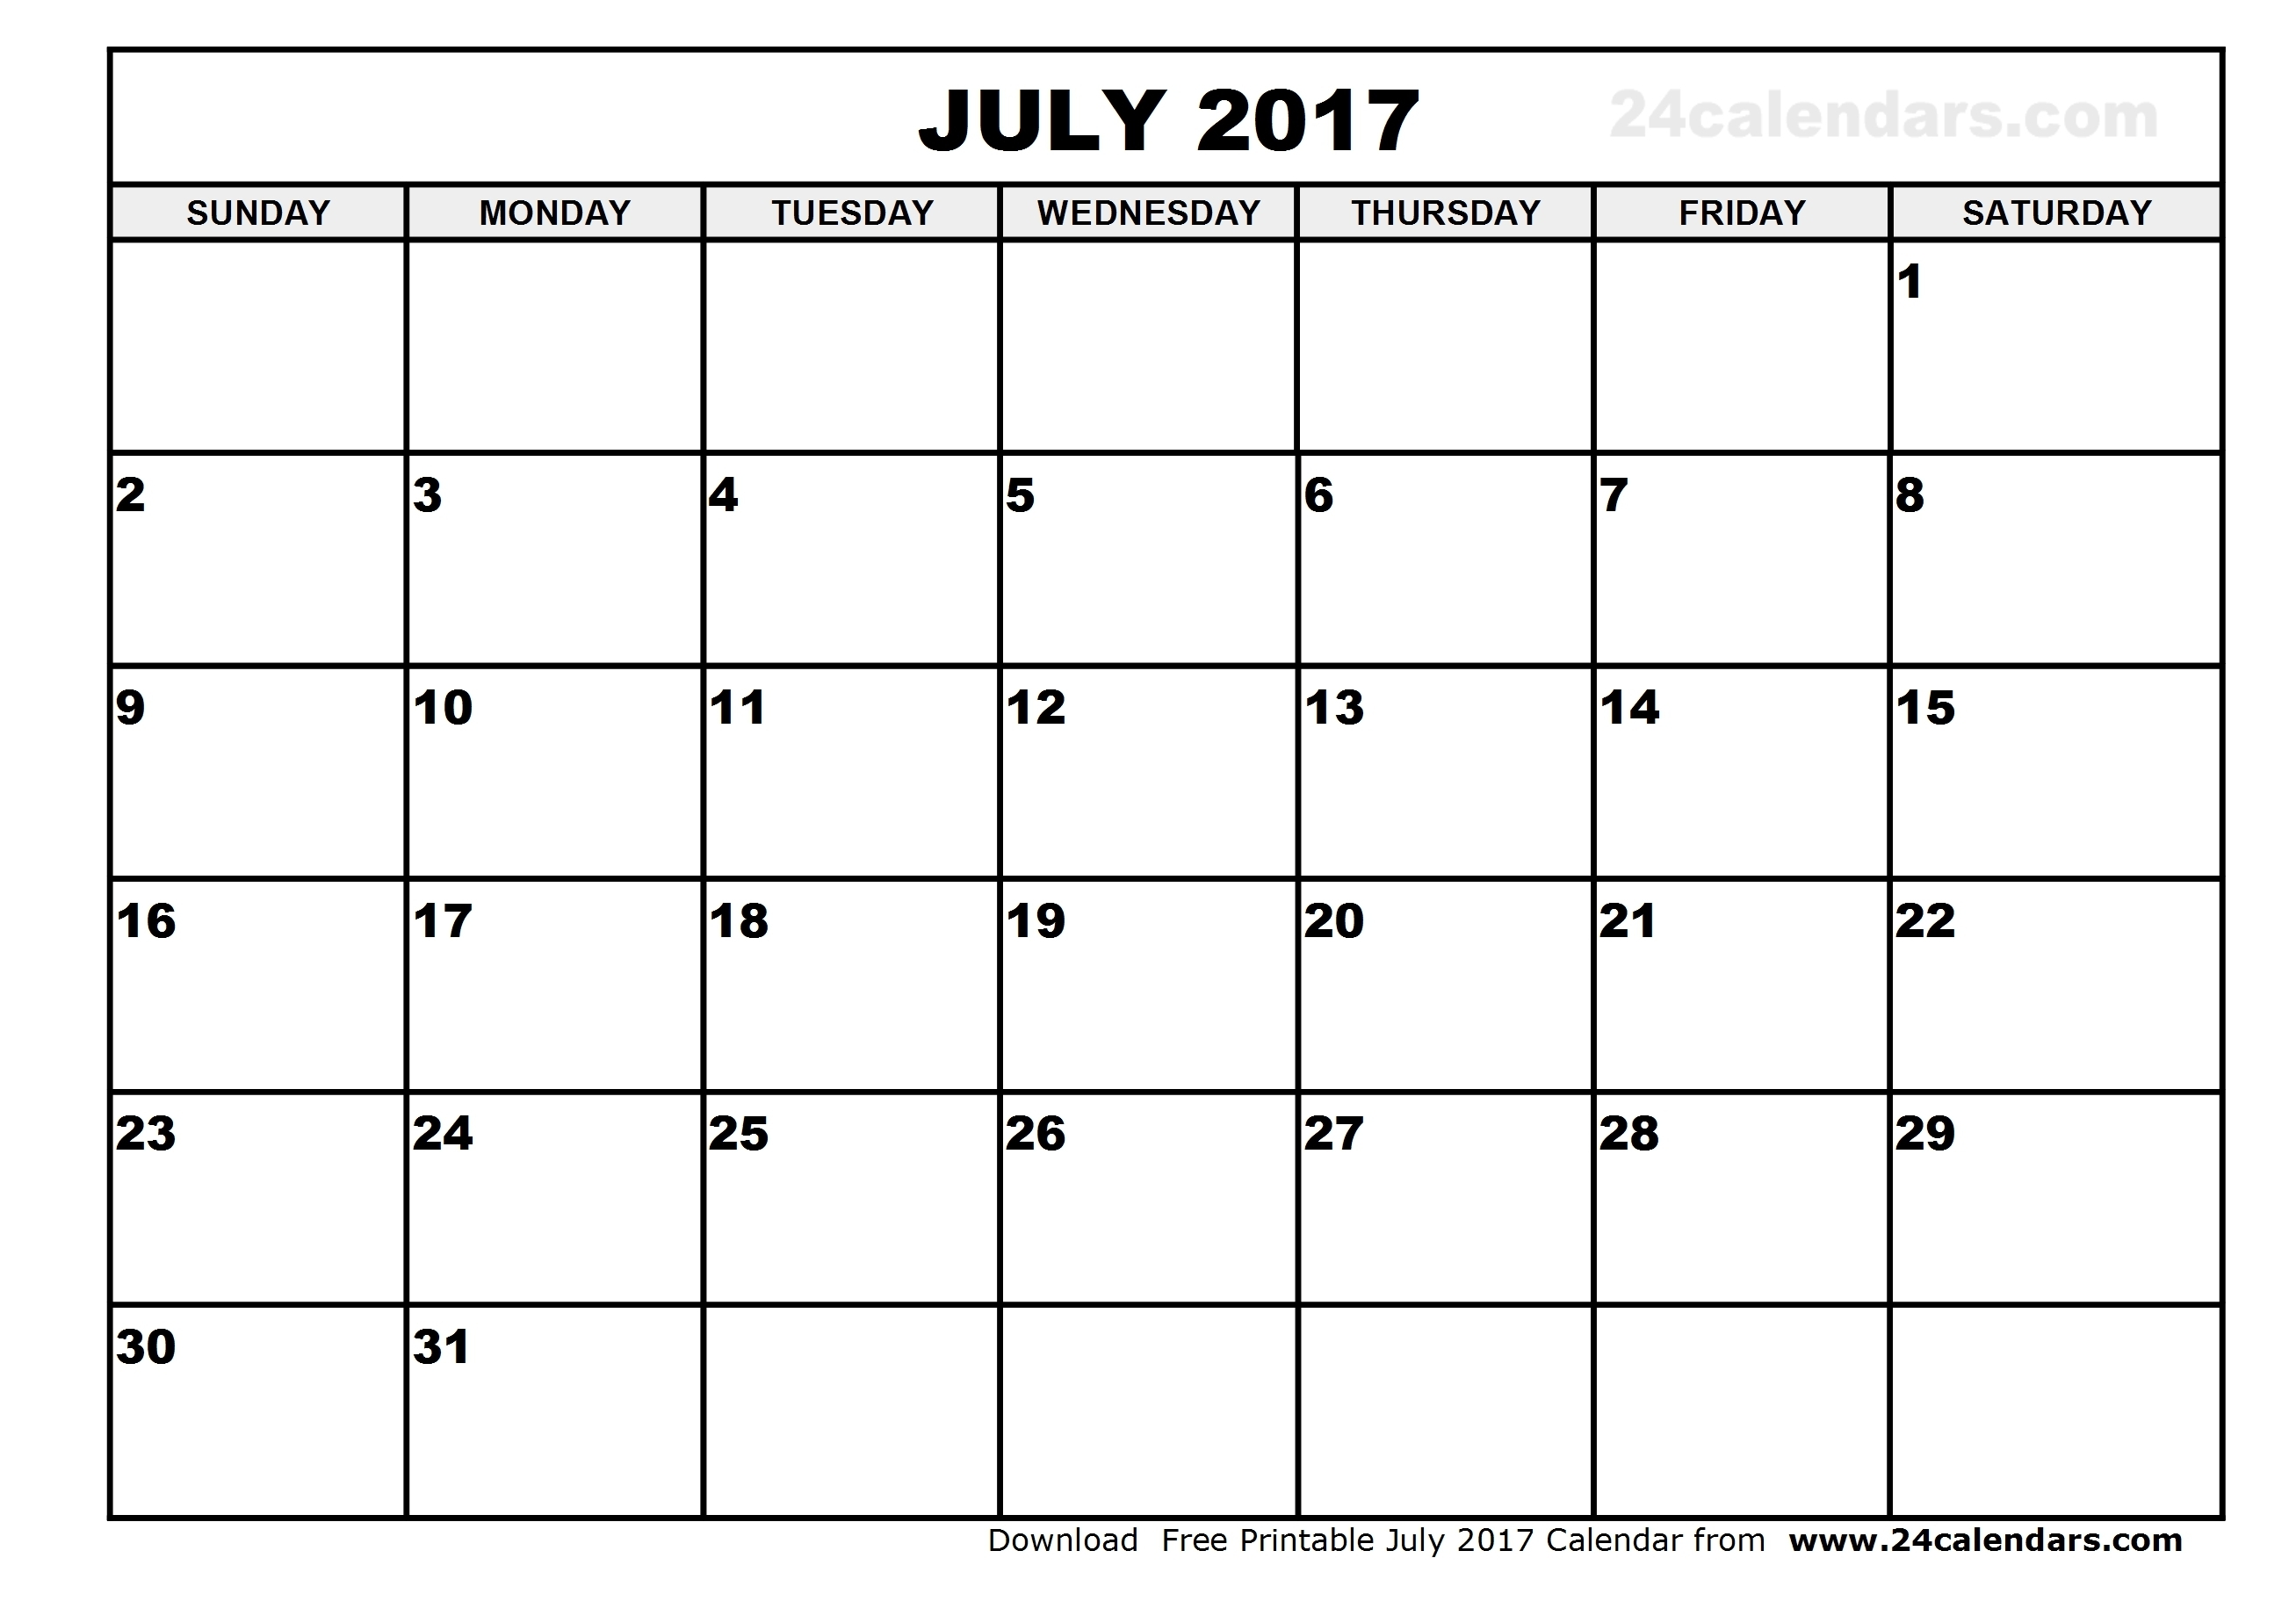 Printable Calendar For July 2017 - Printable Calendar & Birthday Cards in June And July Printable Calendars